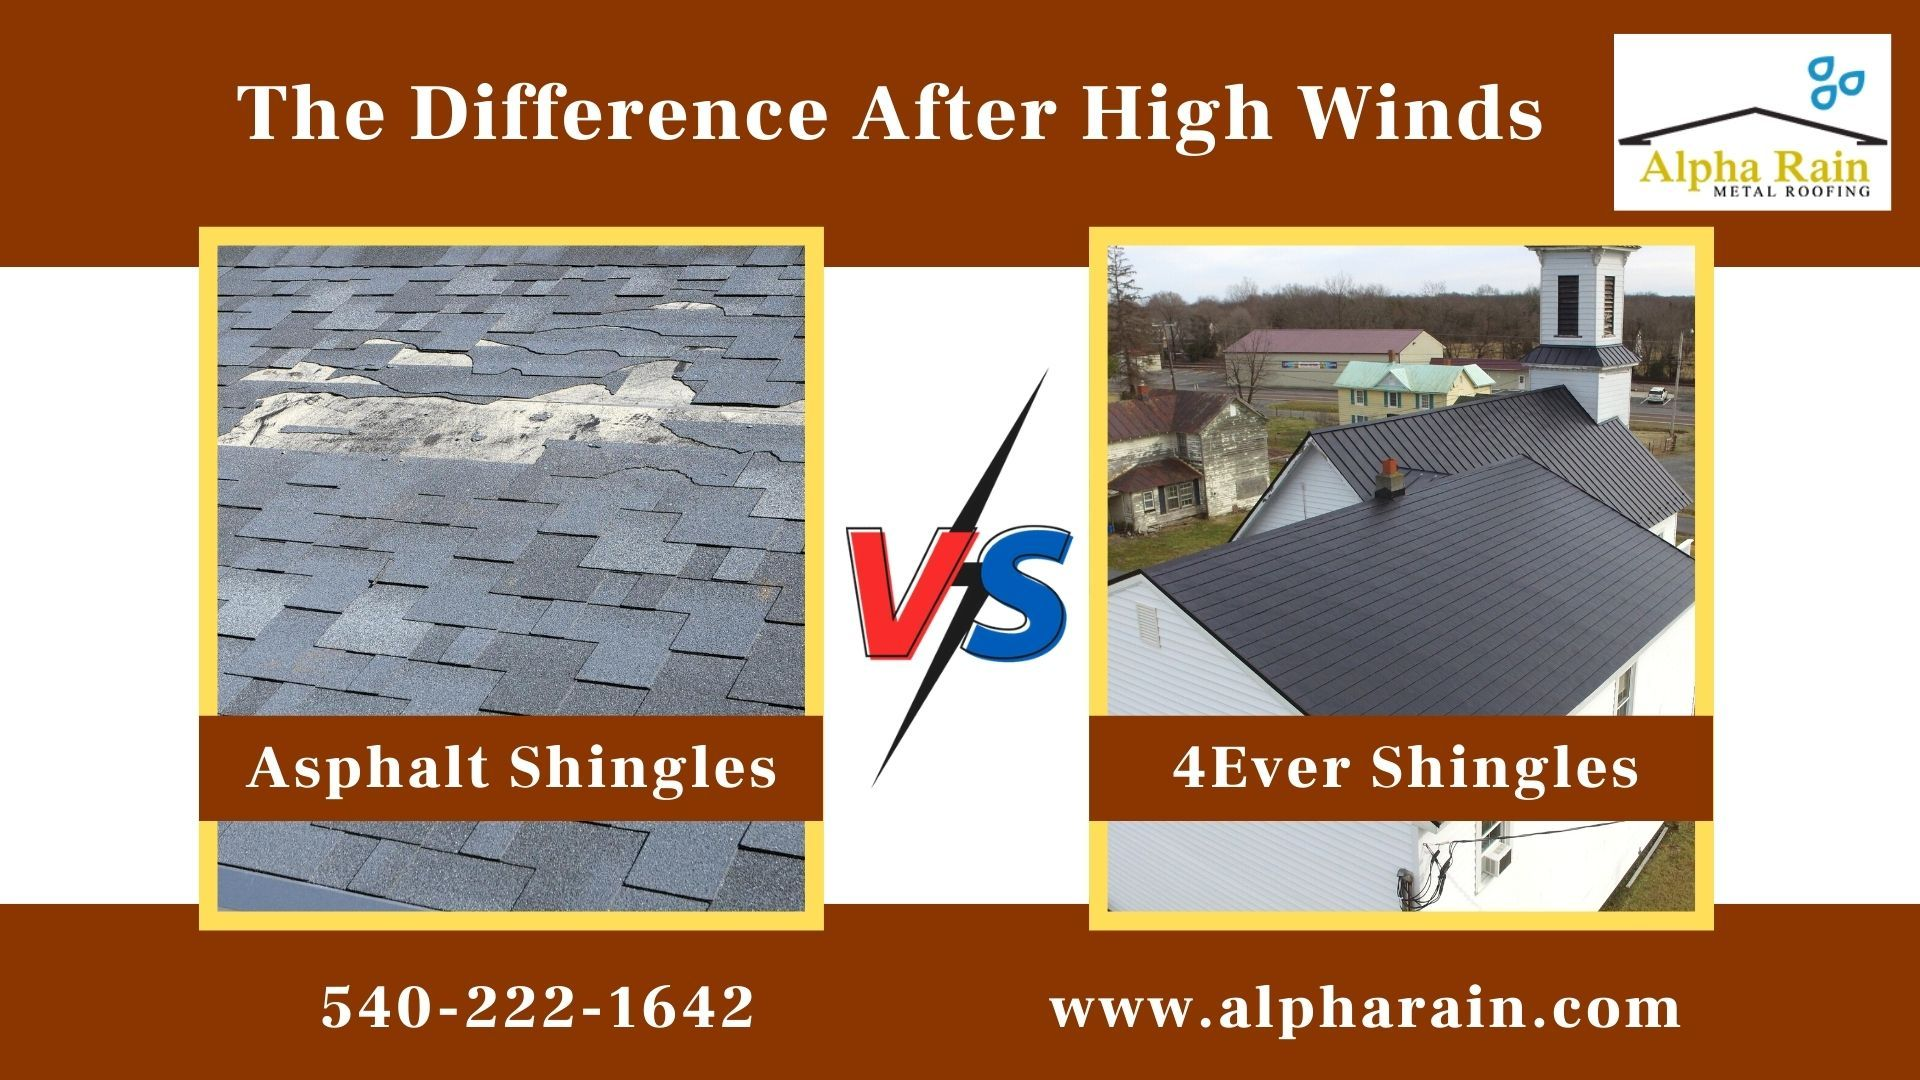 Installing Metal Shingles With Three Levels Of Installation In 2020 Metal Roofing Systems Metal Roof Metal Shingle Roof